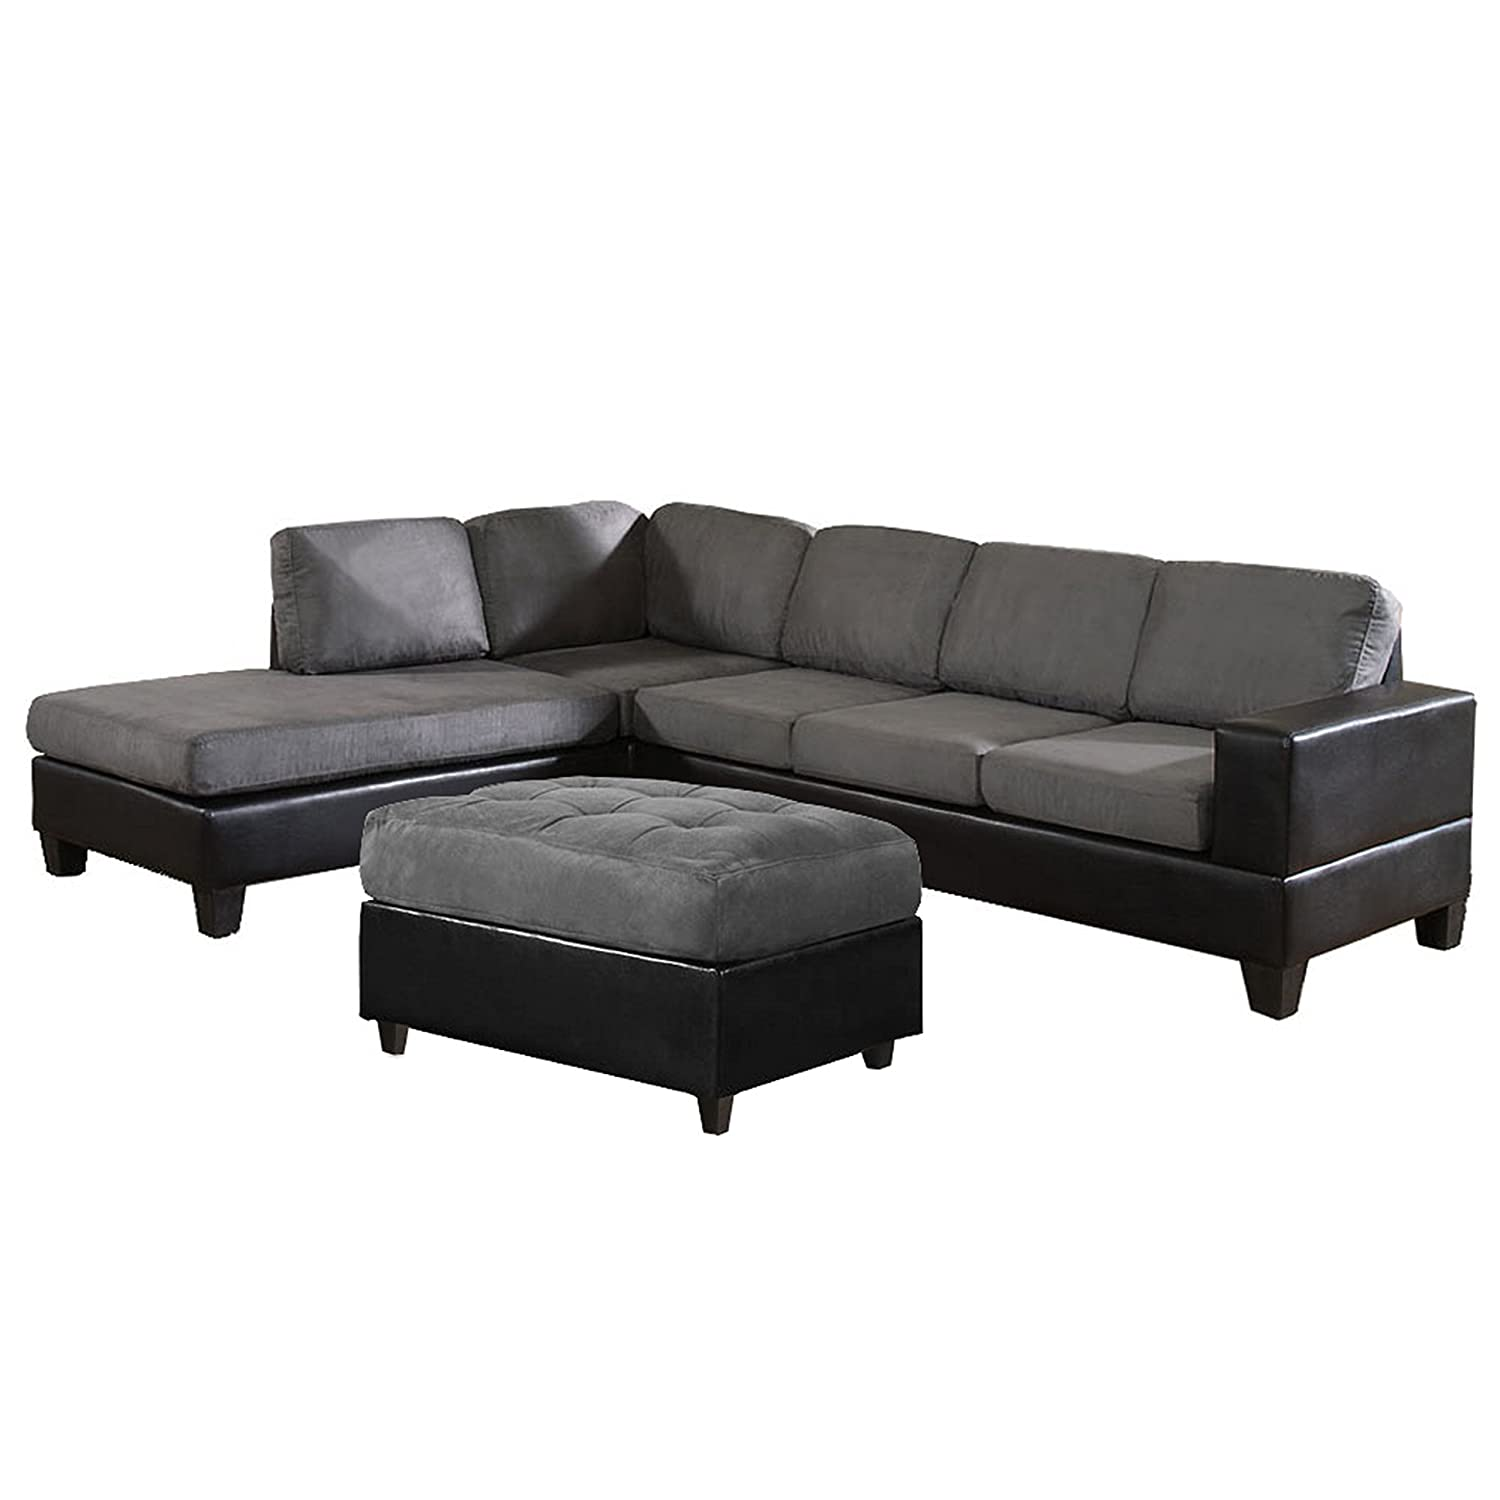 amazoncom us pride sierra microfiber sectional sofa with ottoman left gray kitchen u0026 dining